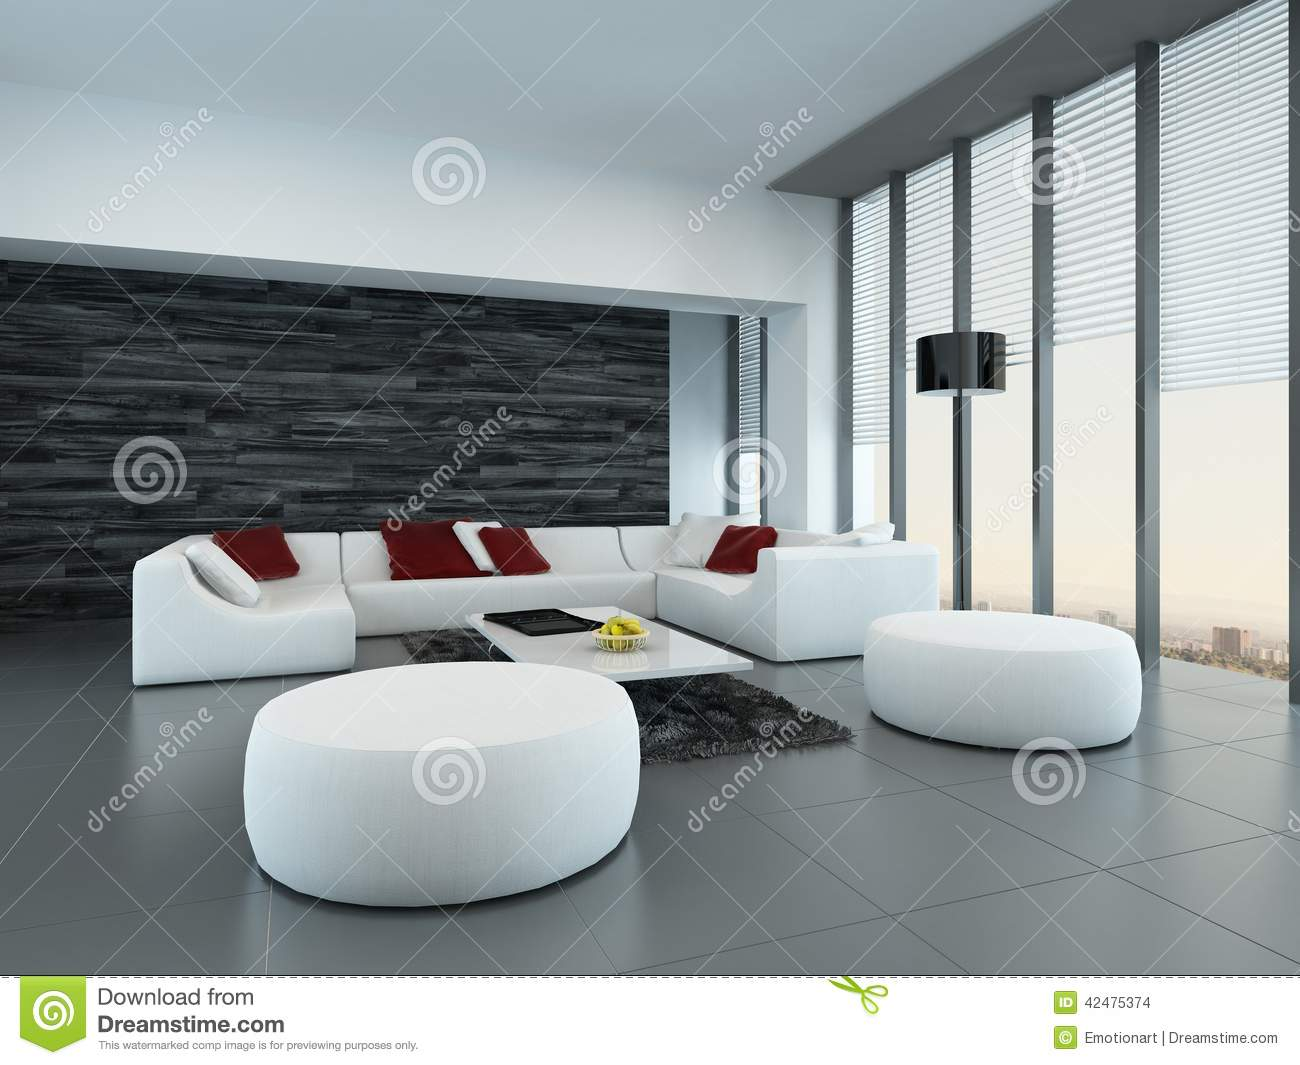 model ede salon moderne blanc intrieur dun salon gris et blanc moderne illustration stock image - Model Ede Salon Moderne Blanc